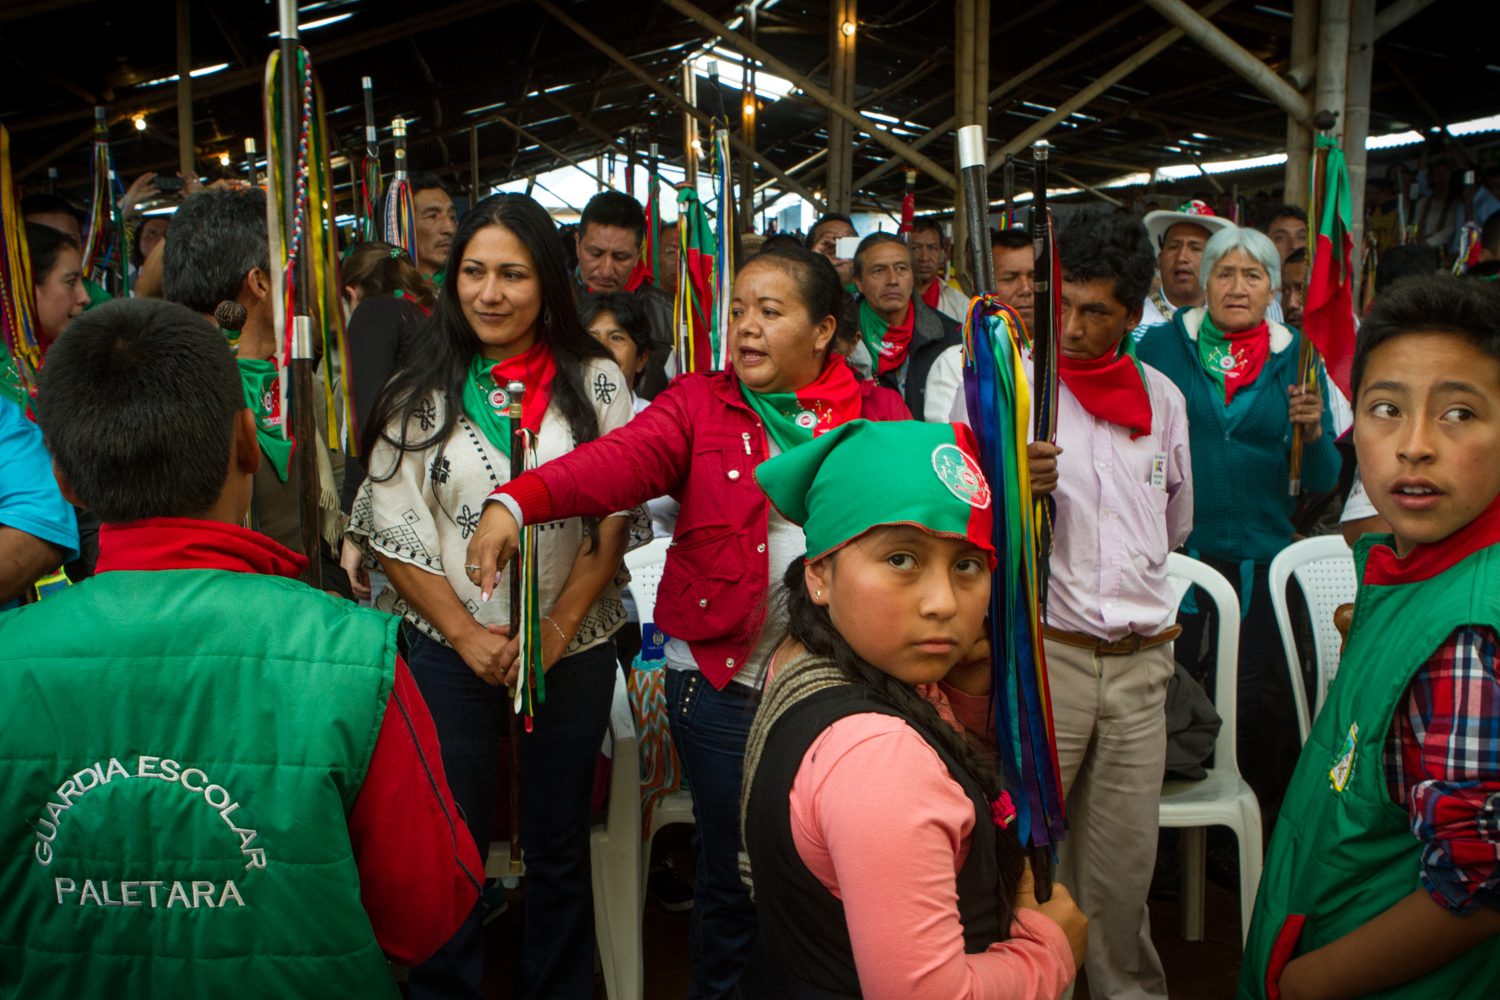 Indigenous community members convene in La Maria, Cauca, to receive the peace delegates after finalizing the peace accord in Havana.